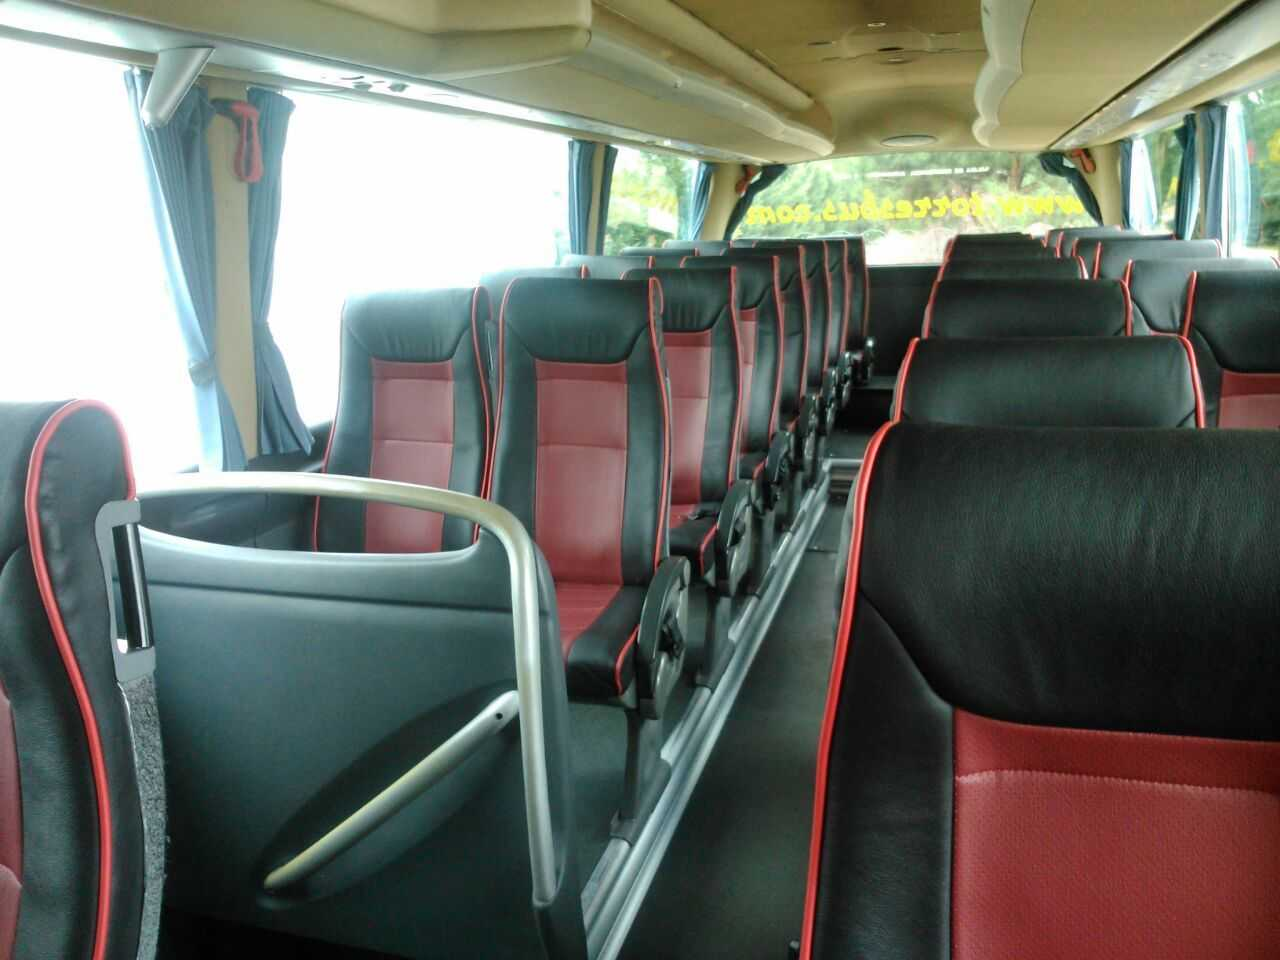 Bus rental Spain Madrid – What comfort can we expect?